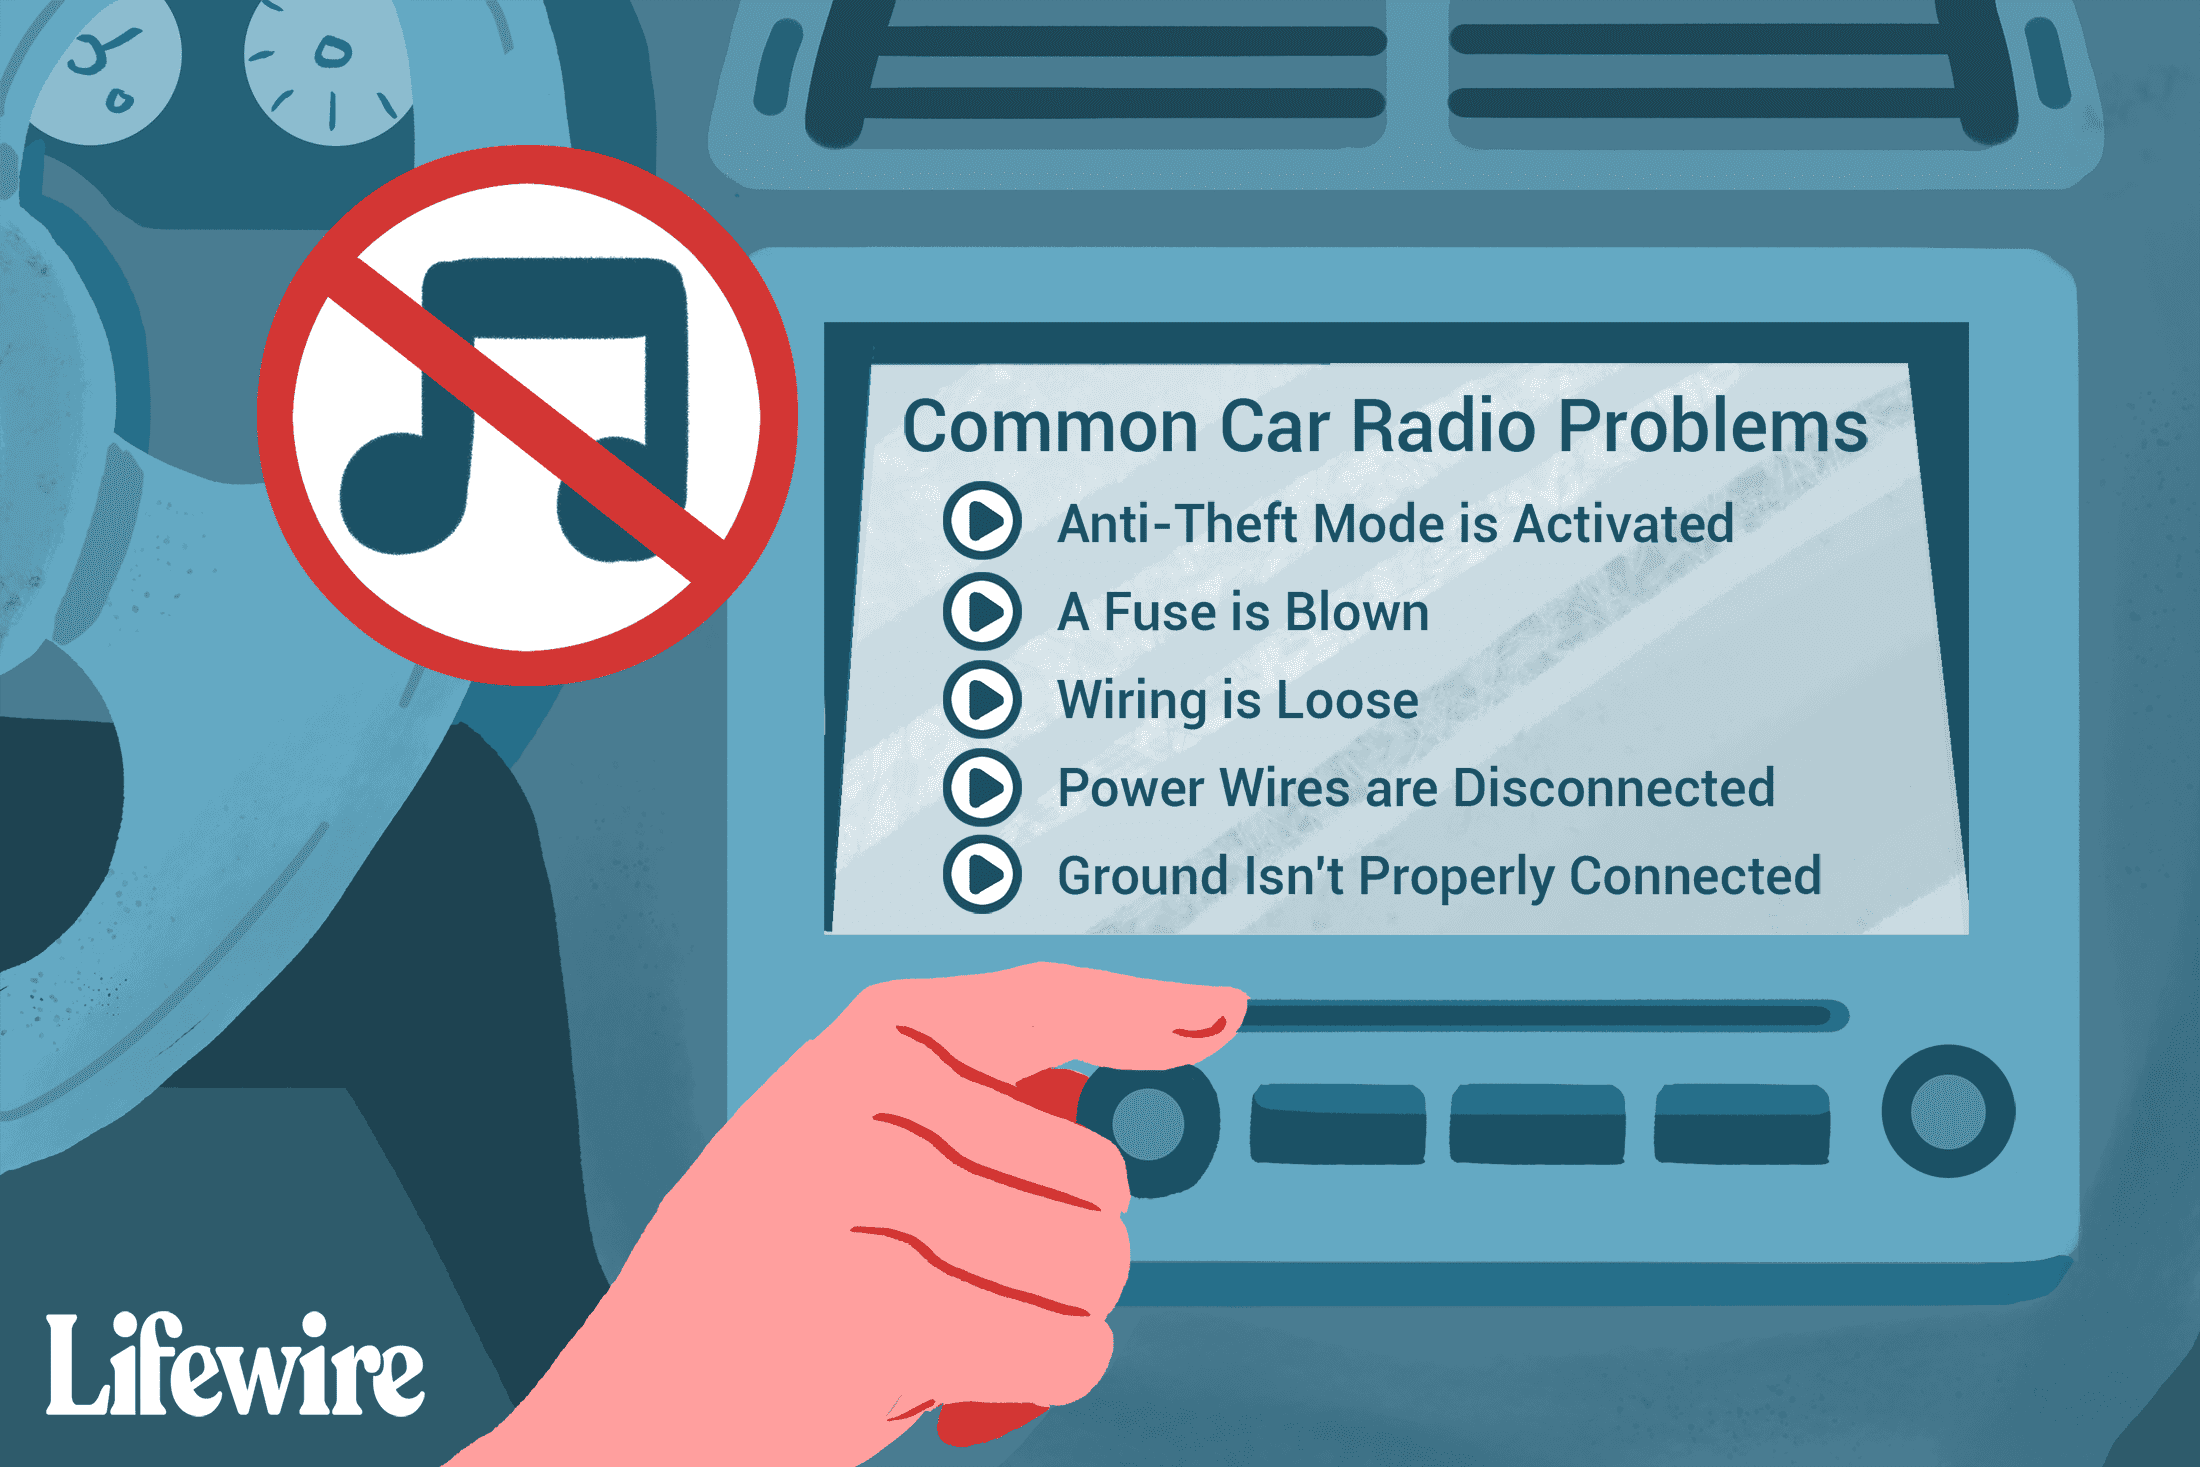 An illustration of the common problems people experience with car radios.